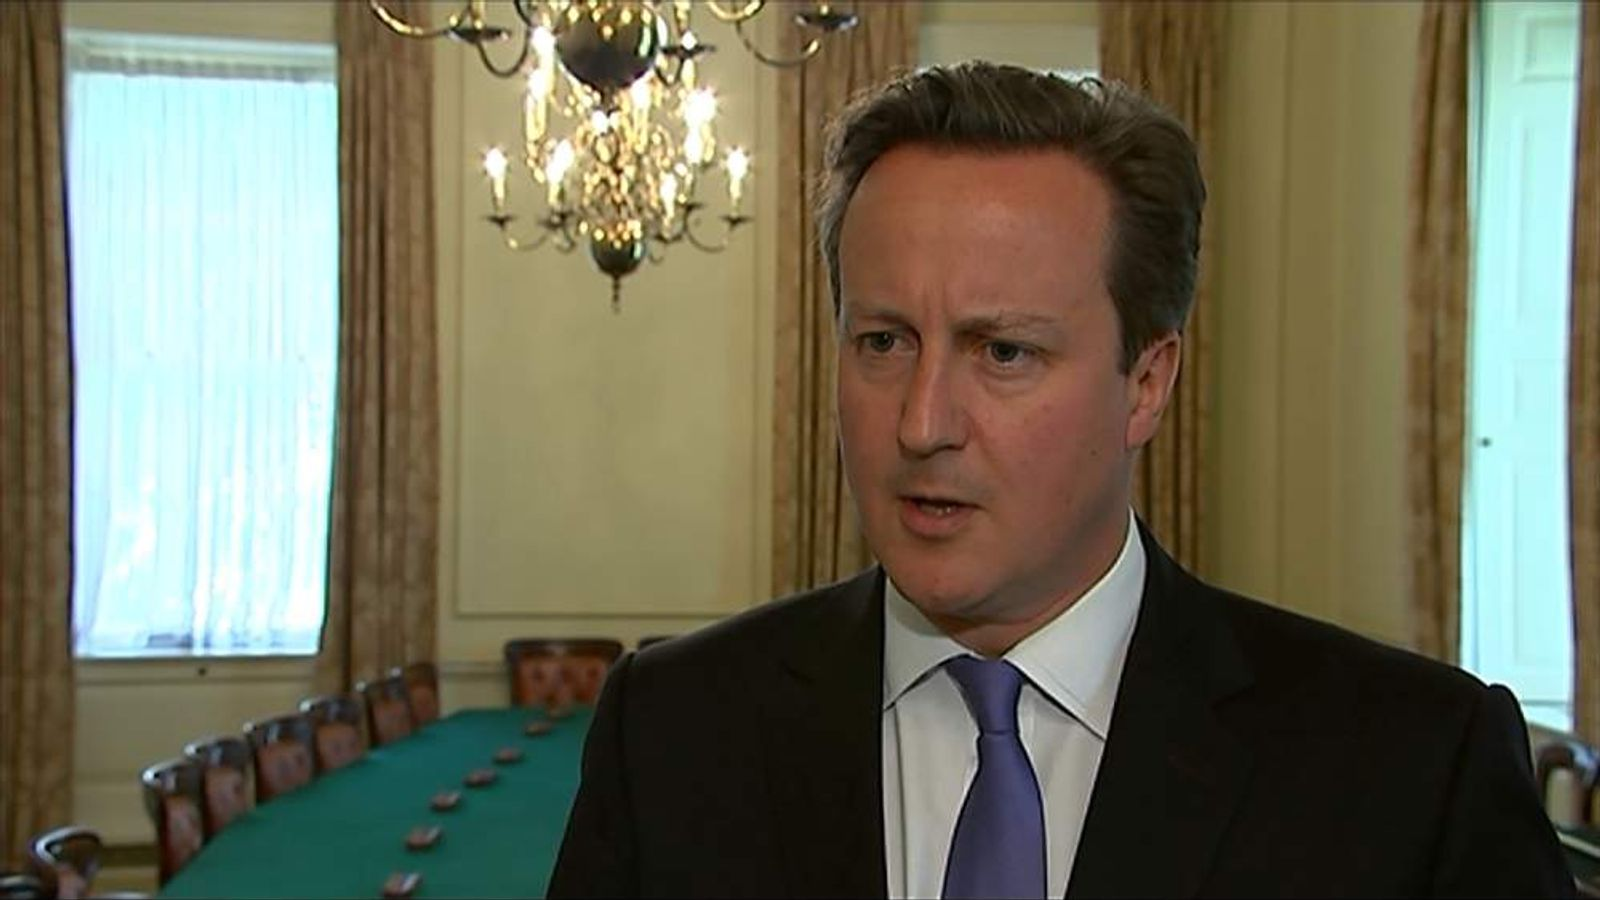 Prime Minister David Cameron apologises for hiring Andy Coulson